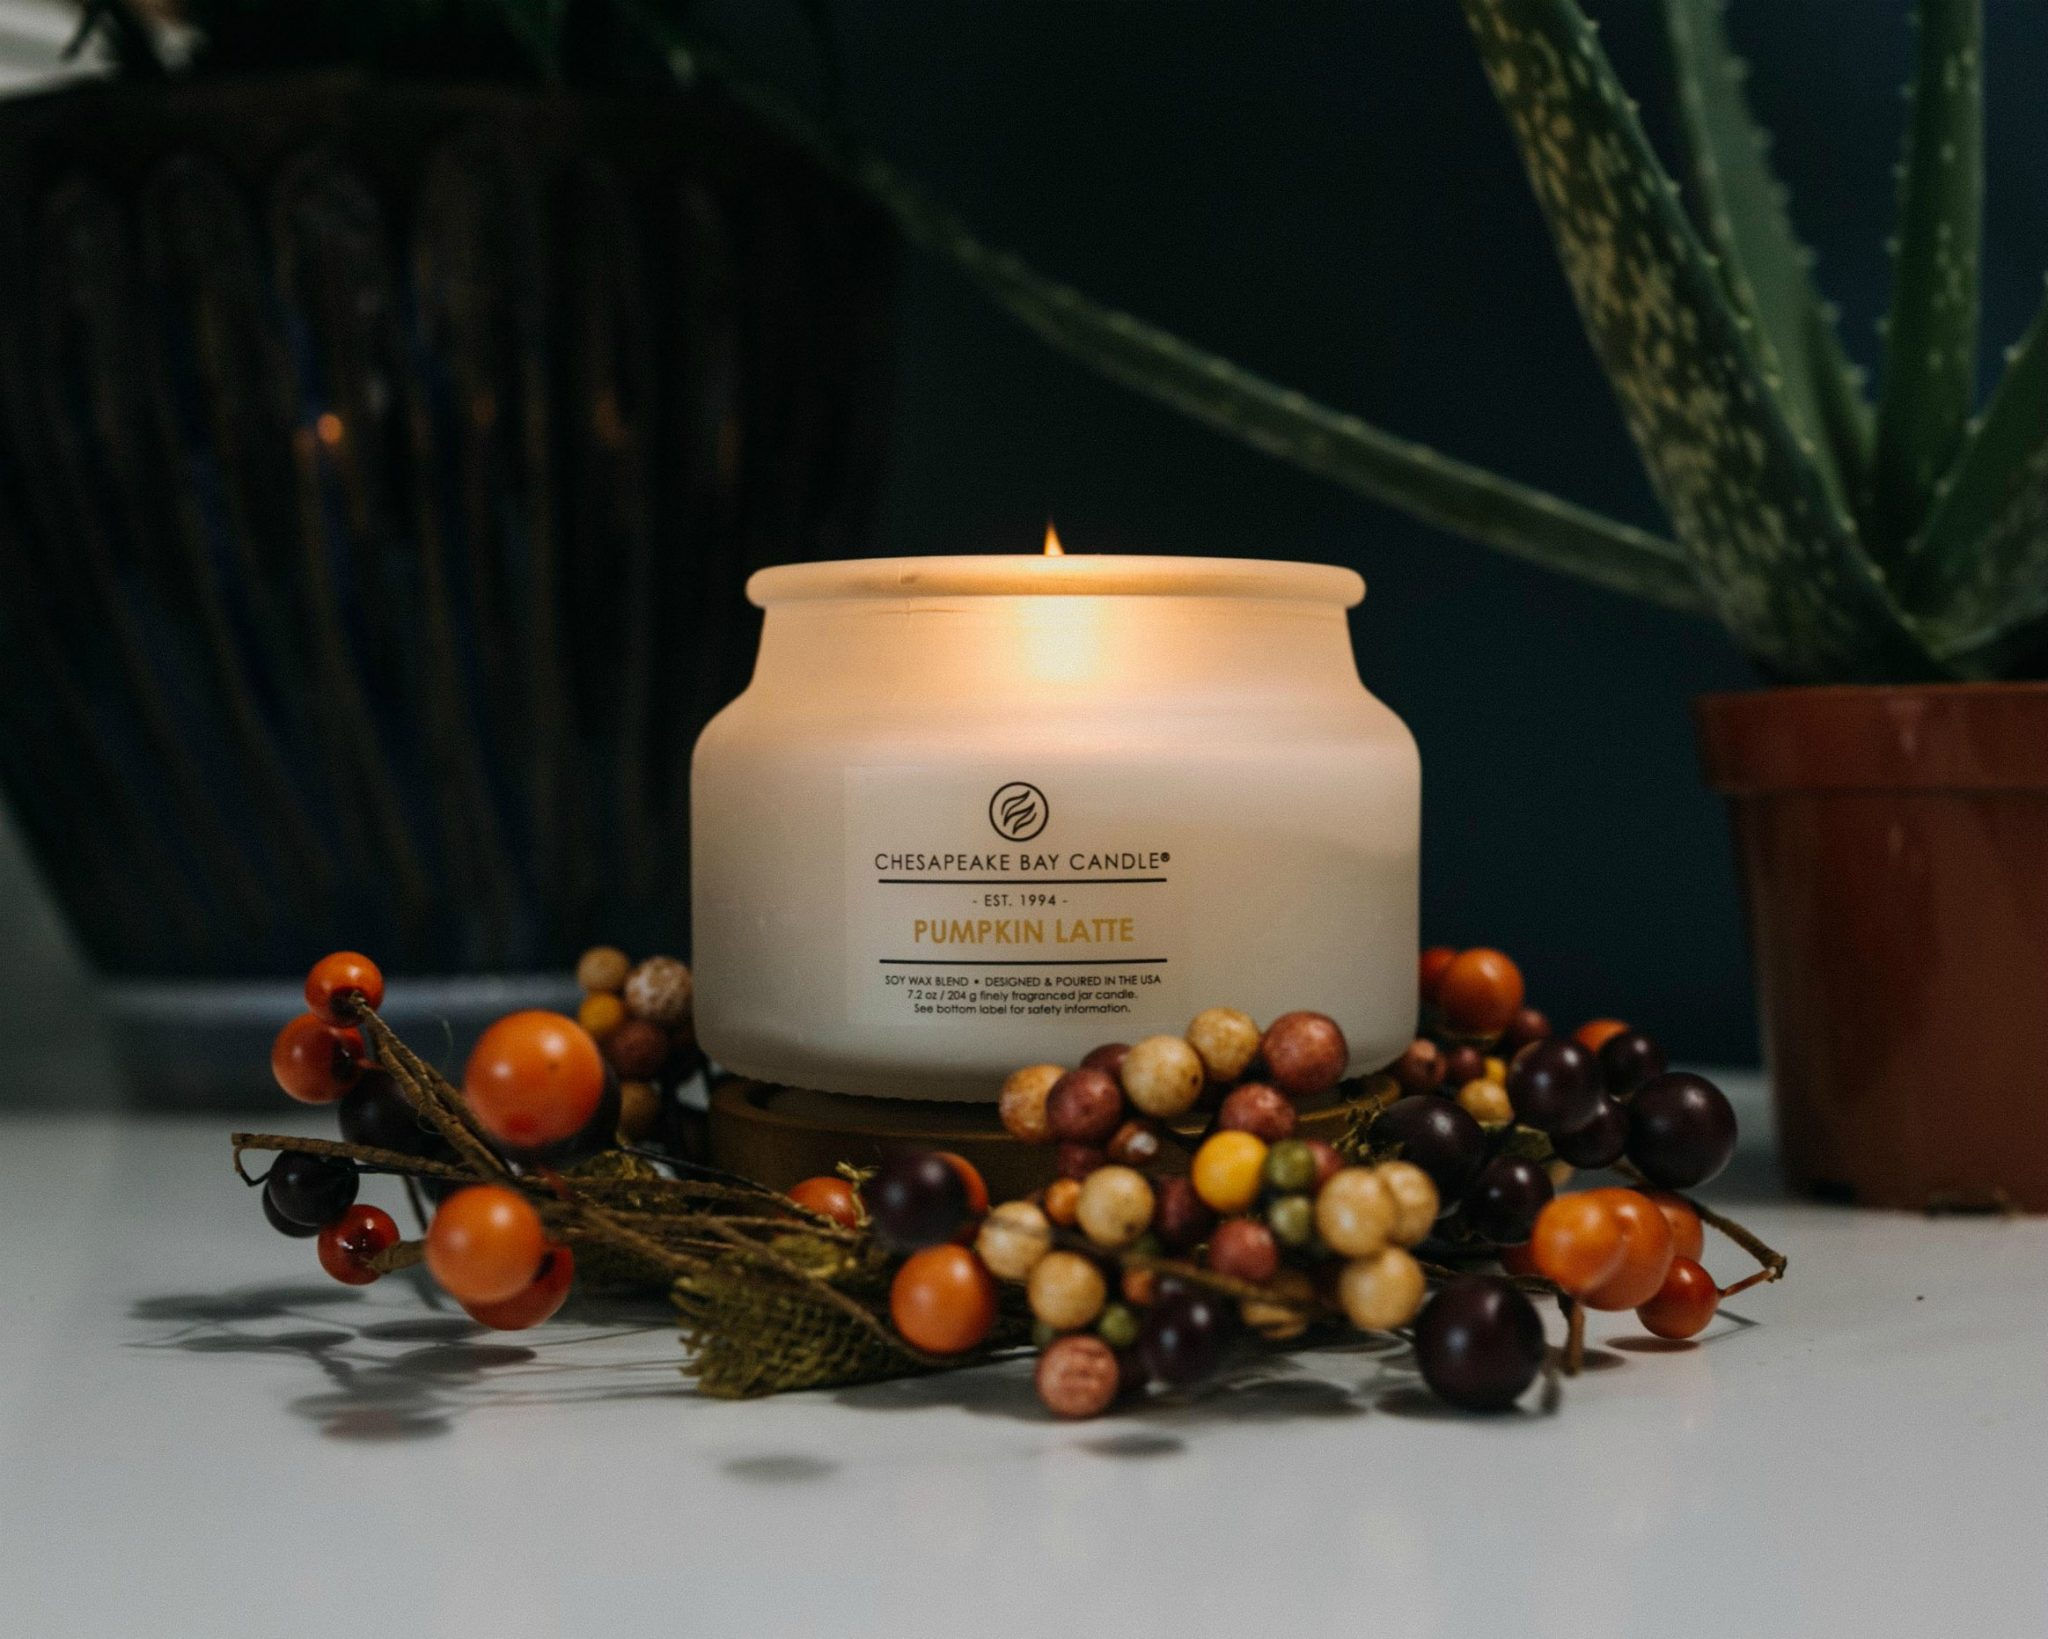 Chesapeake Bay Candle Heritage Collection Pumpkin Spice fragrance review